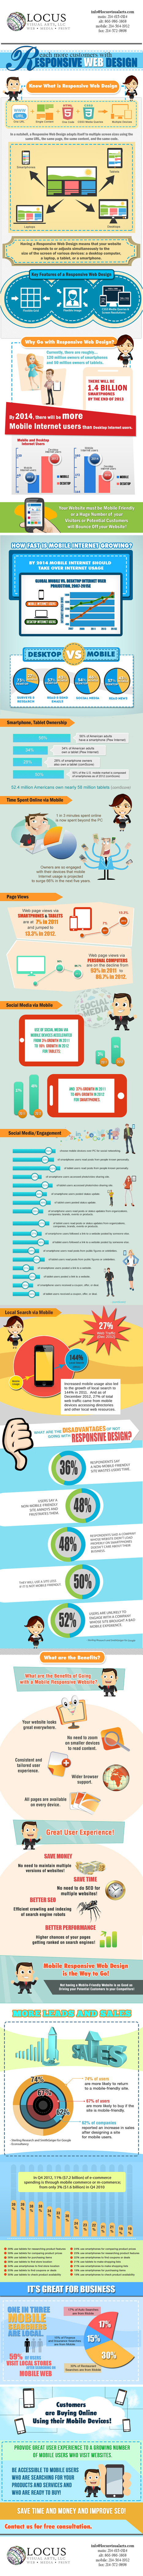 Infographic – Mobile Responsive Web Design for More Leads & Sales   Design   Scoop.it